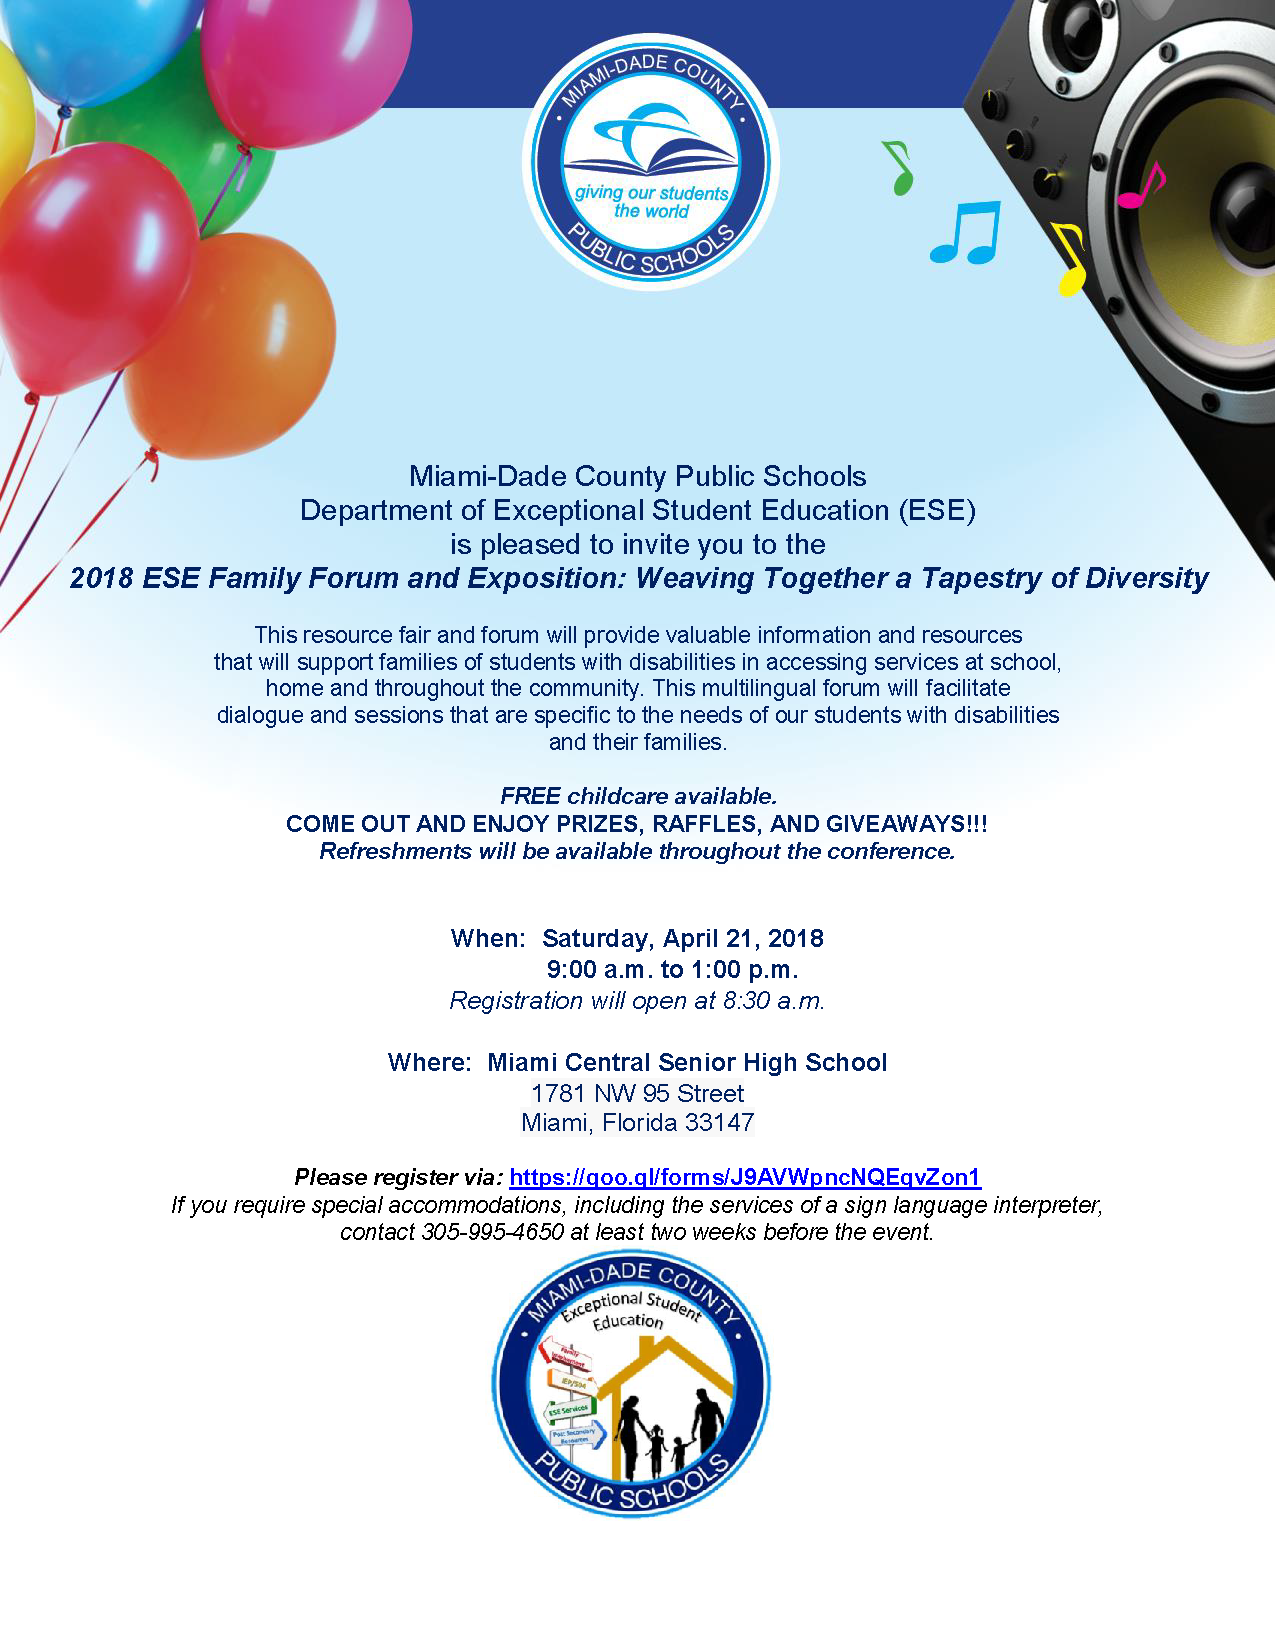 2018 Exceptional Student Education (ESE) Family Forum and Exposition: Weaving Together a Tapestry of Diversity @ Miami Central Senior High School | Miami | Florida | United States